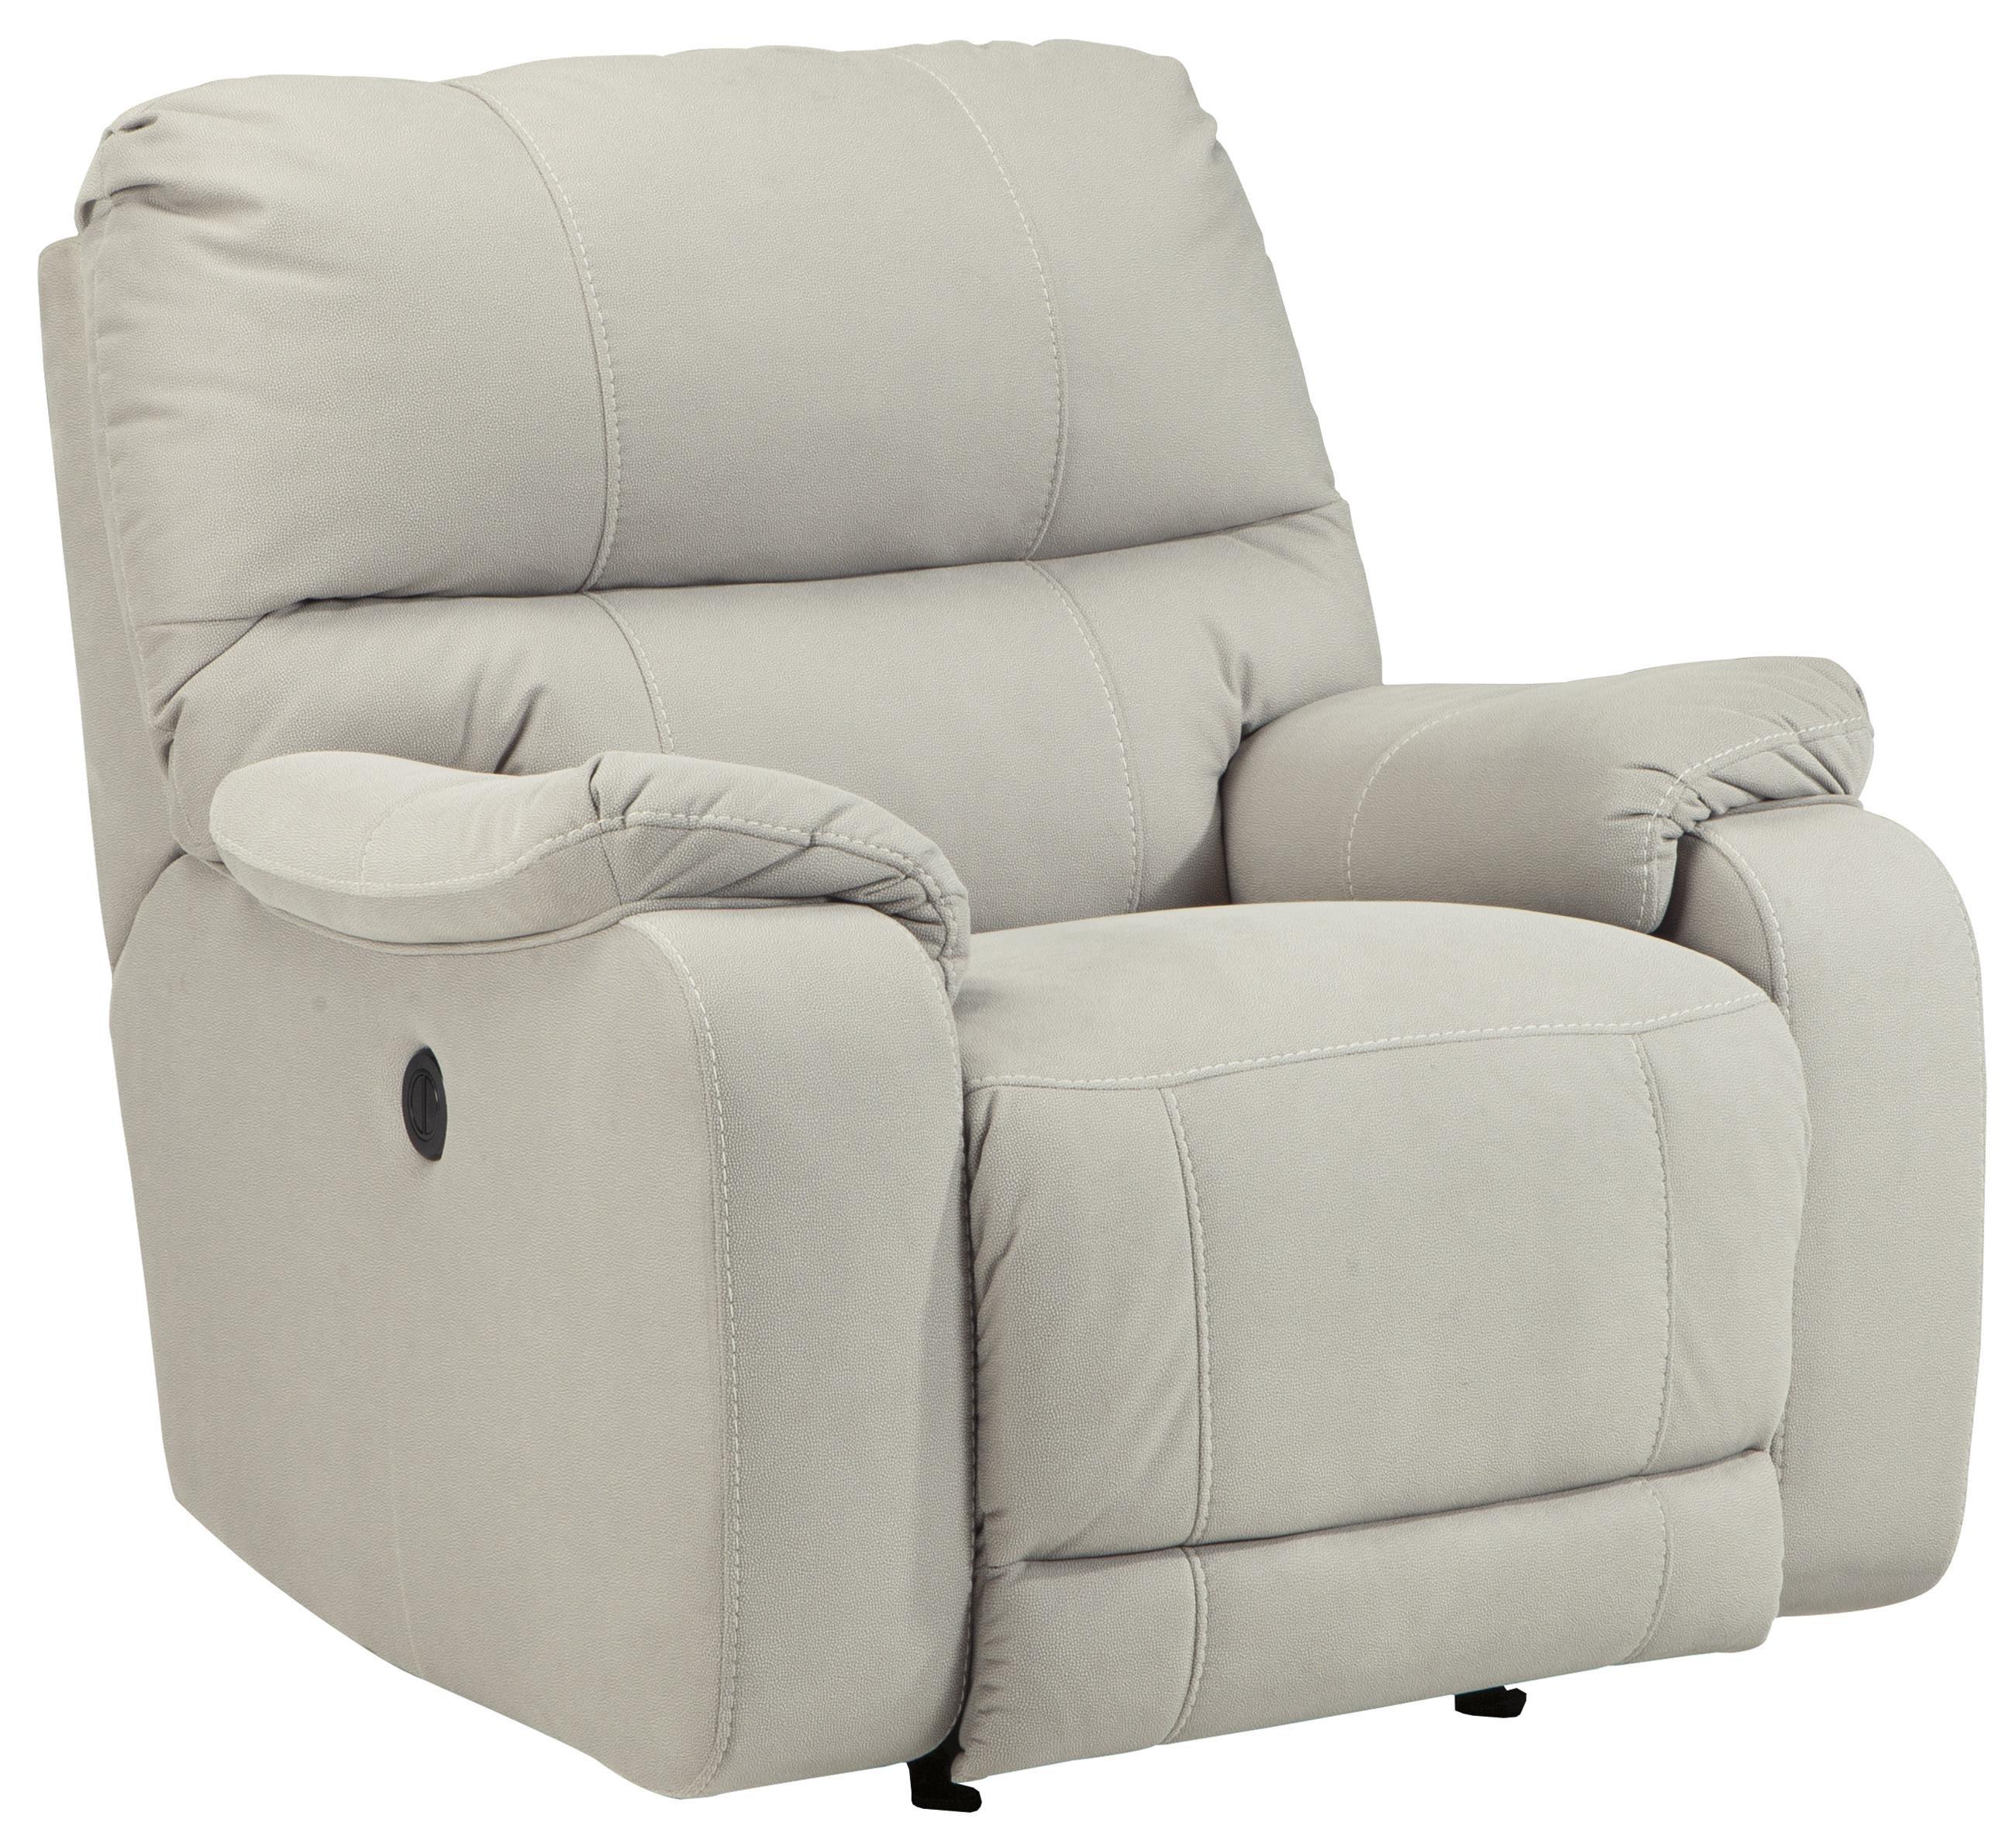 Benchcraft Bohannon Power Rocker Recliner - Item Number: 5740198